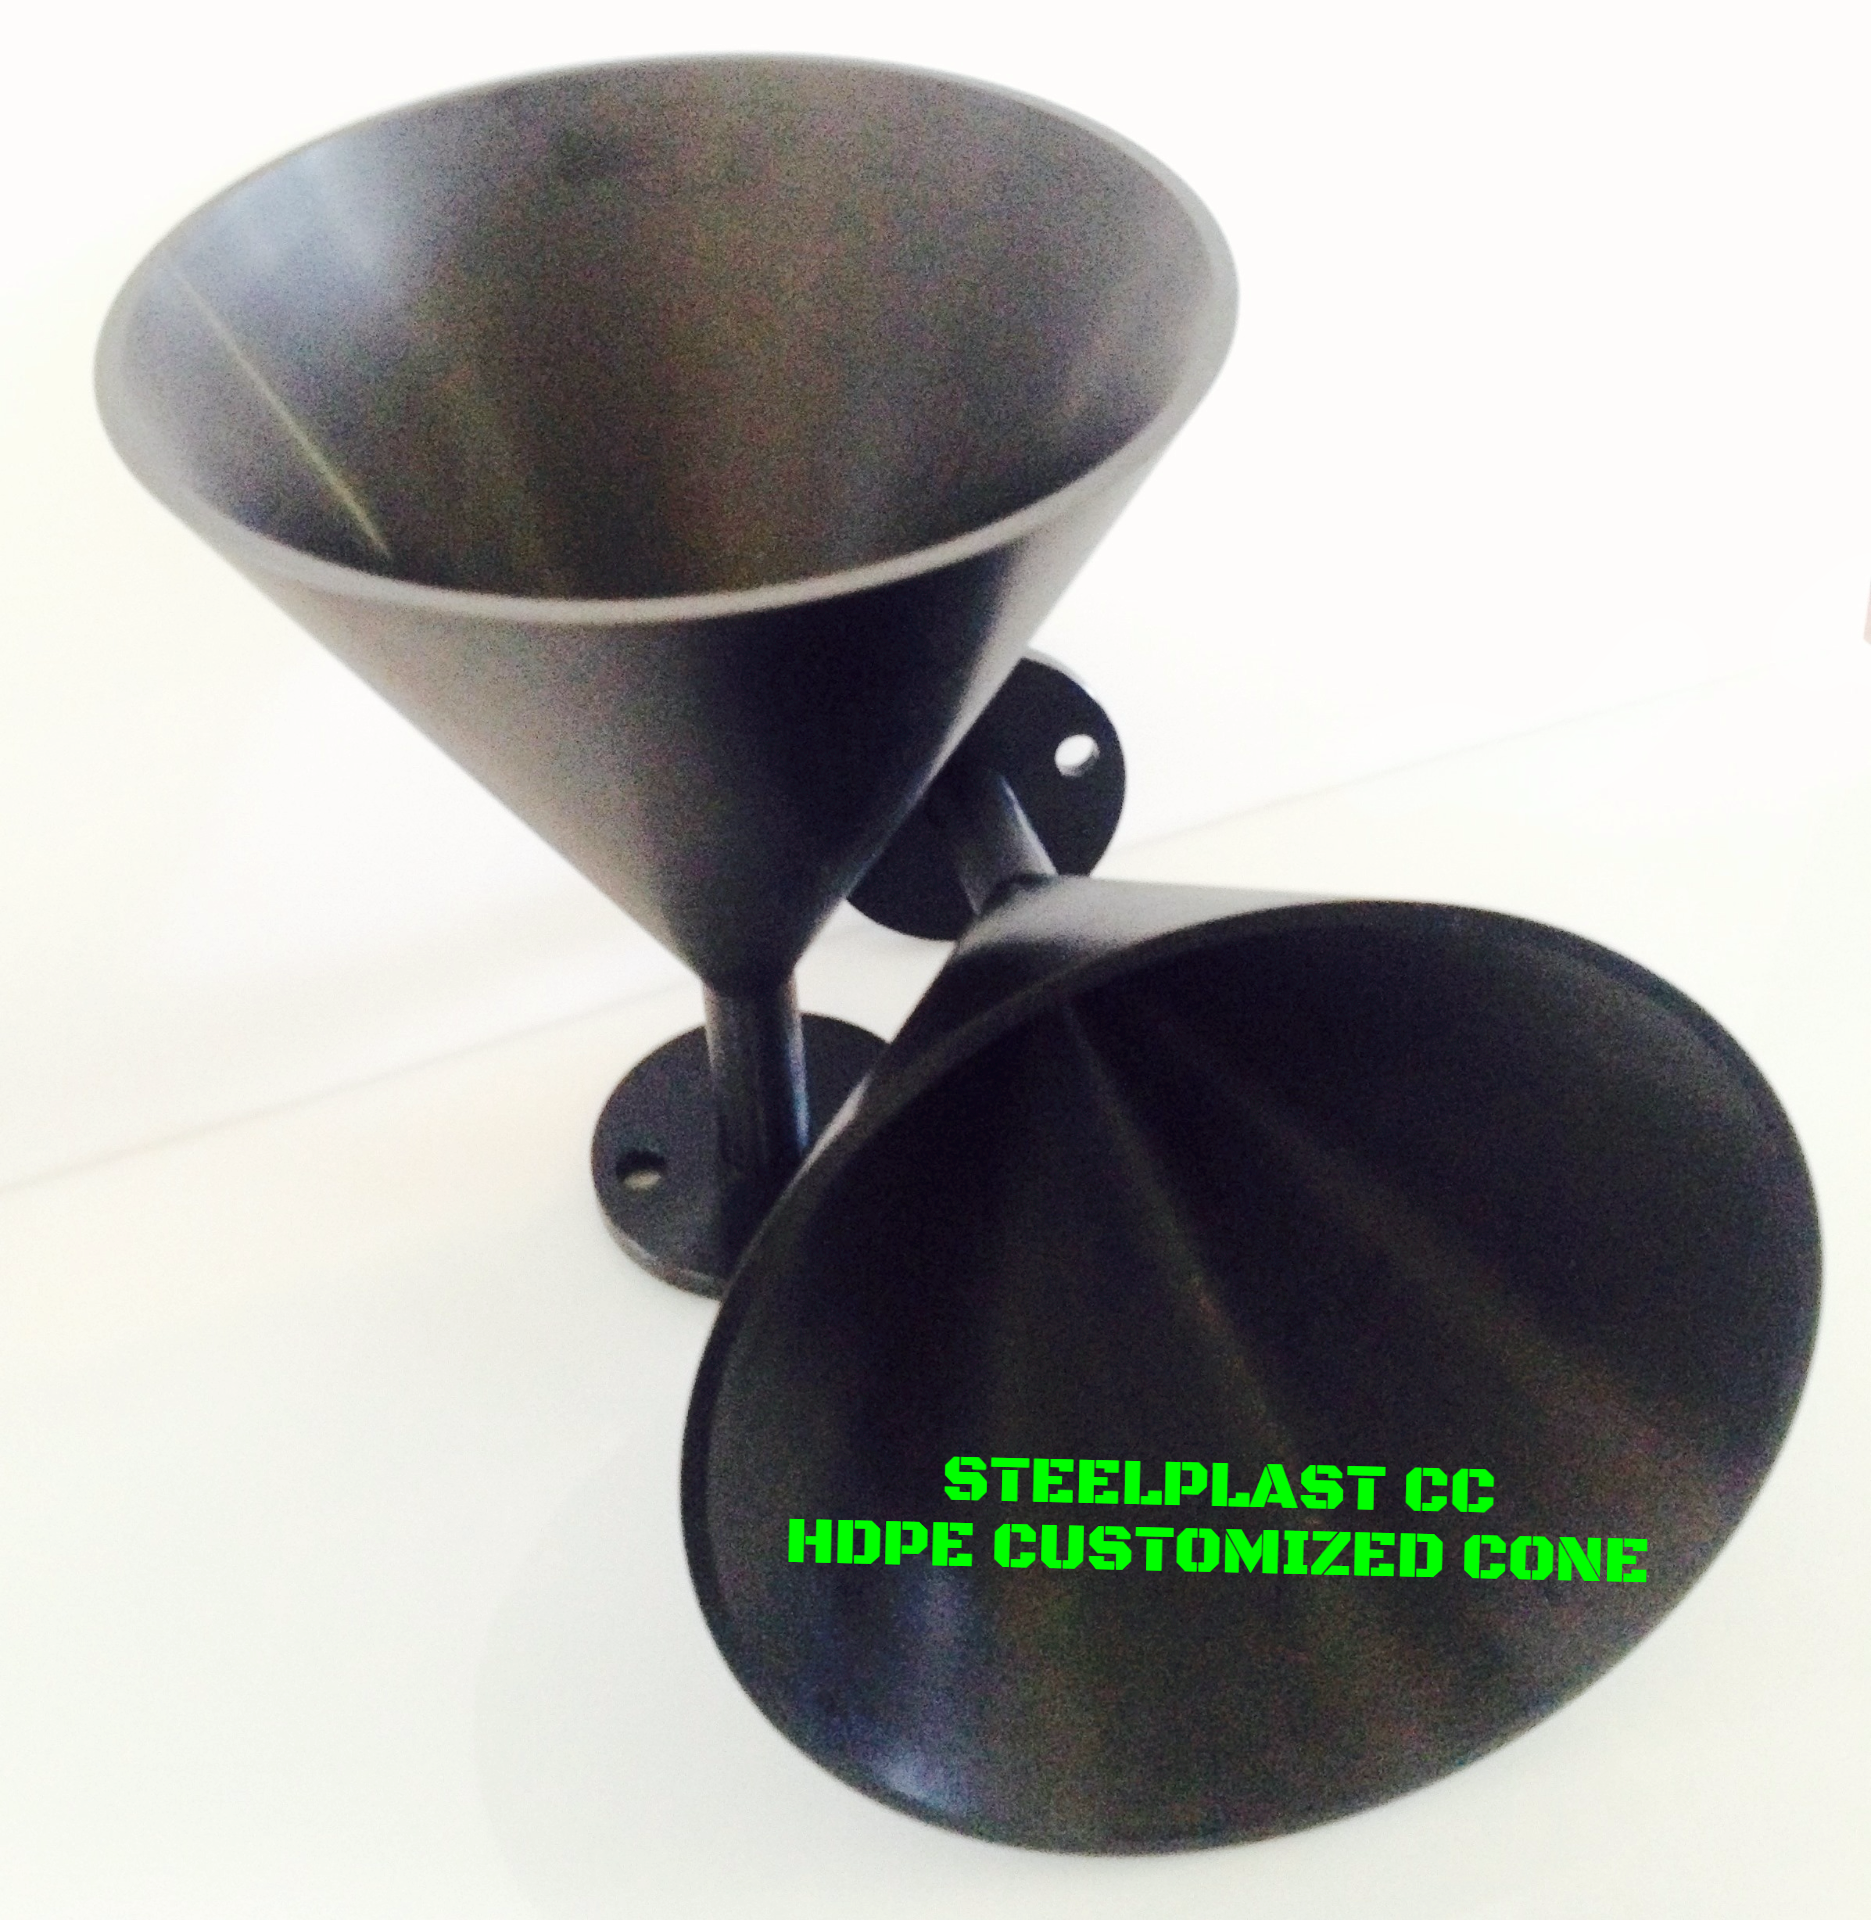 HDPE CONE CUSTOMIZED